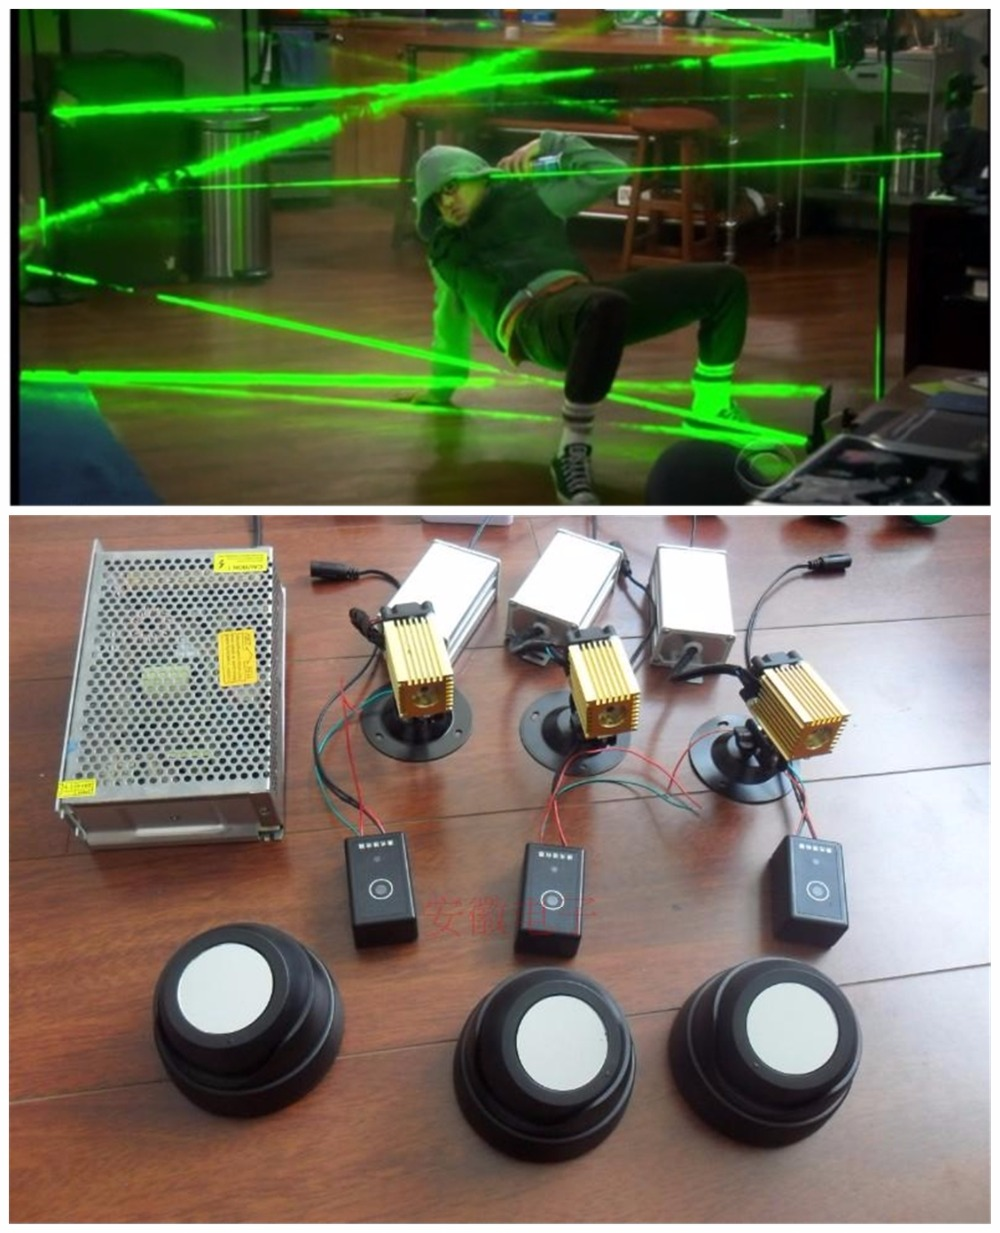 hotsale design magic penetralium escape props Real life room green laser array chamber of escape secret game kit image